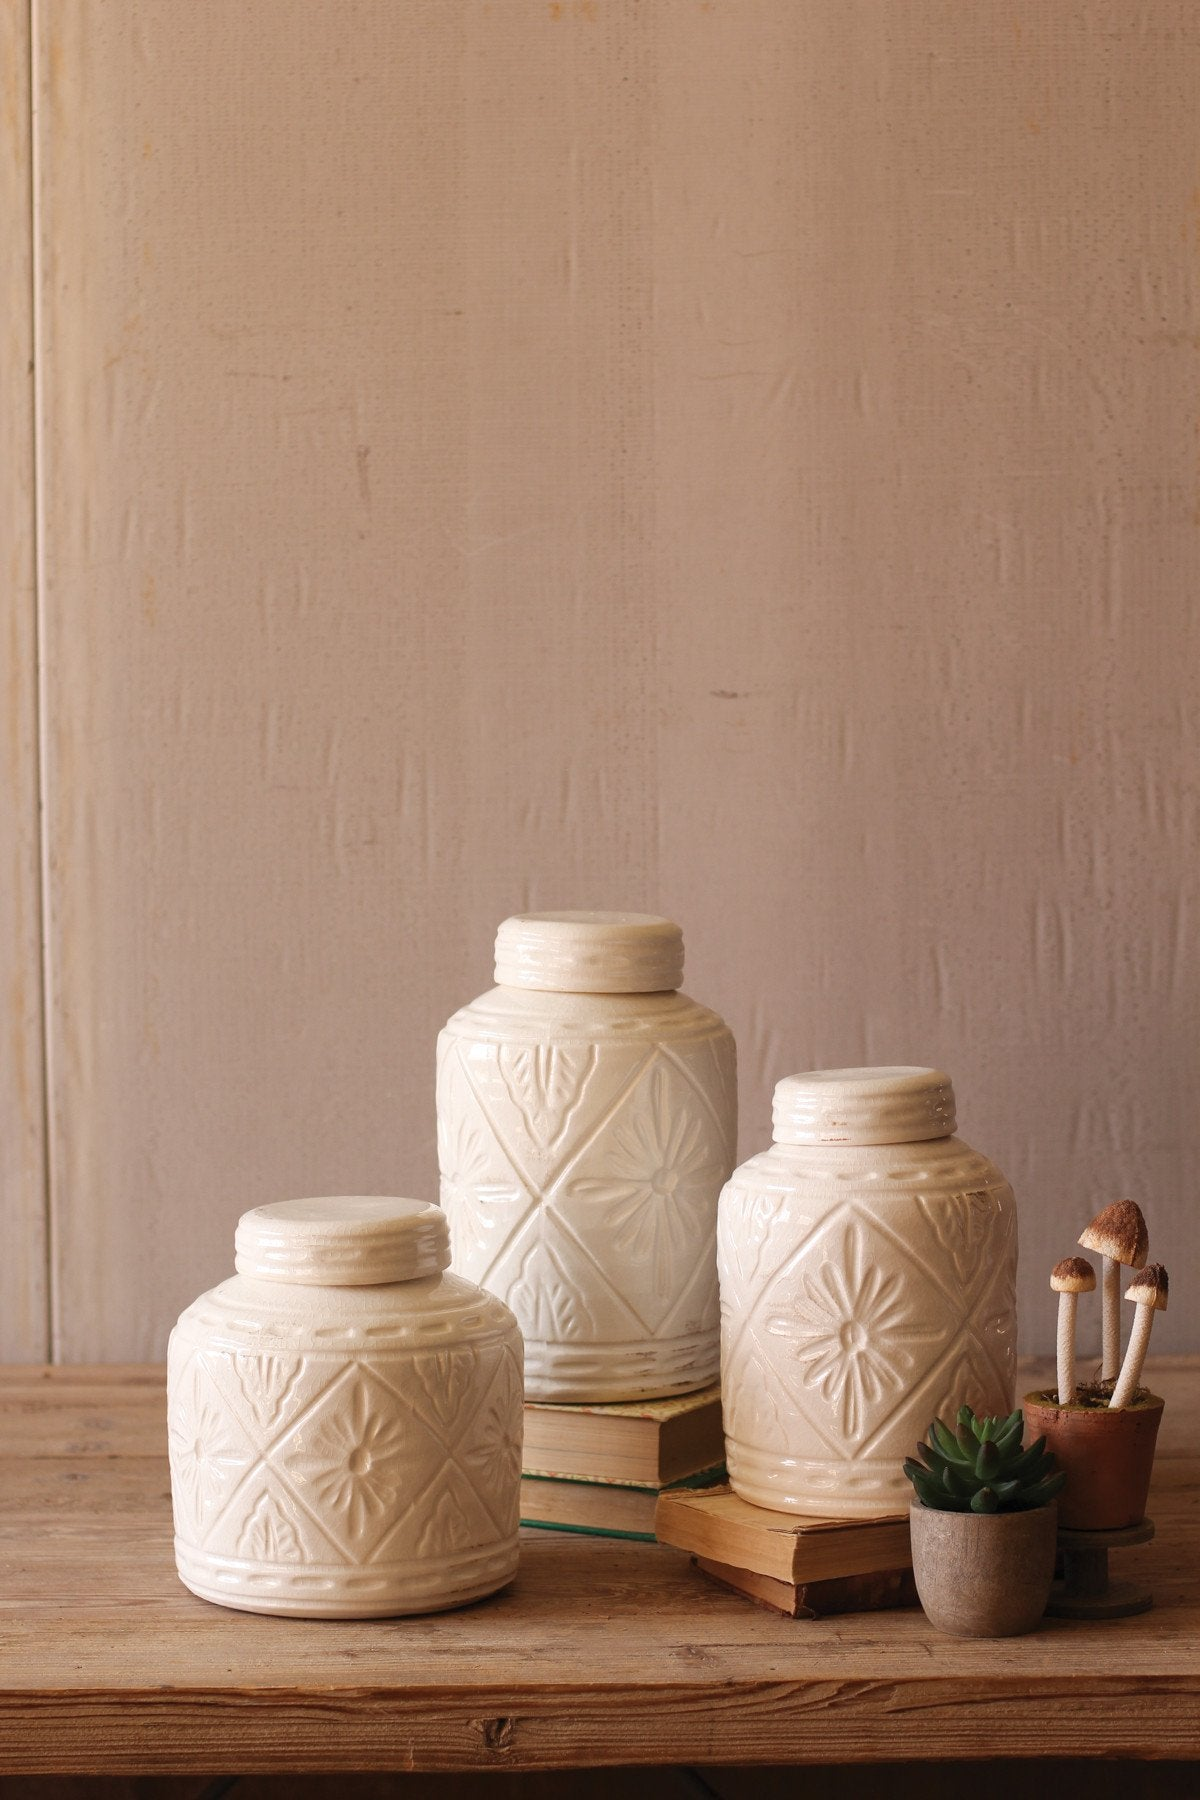 Kalalou Ceramic Canisters With Geometric Pattern - Set Of 3